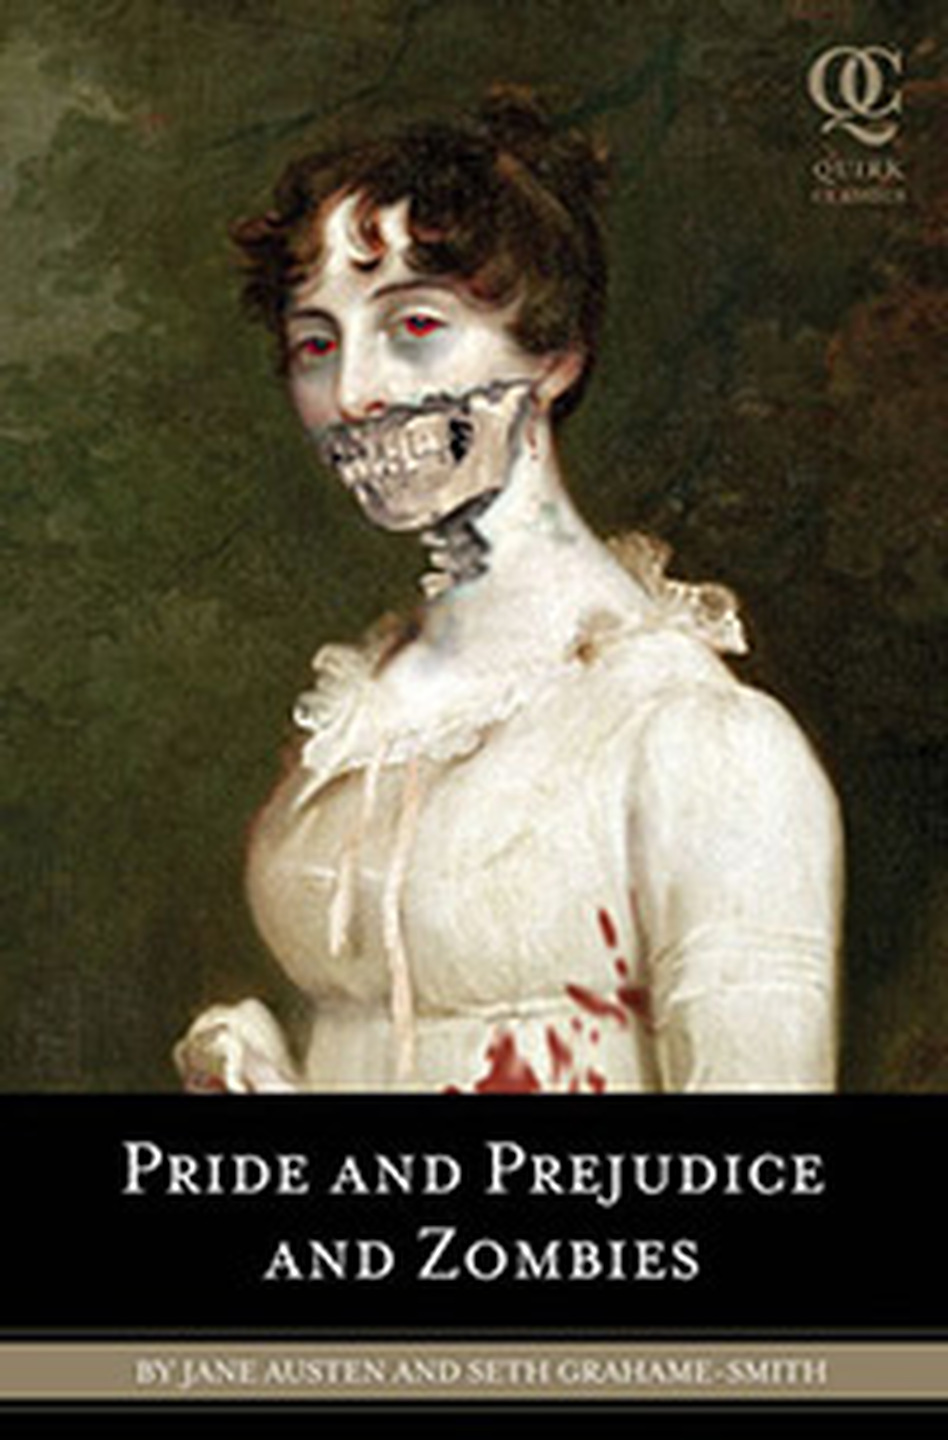 "The book <em>Pride and Prejudice and Zombies</em> adds an incongruous twist to Jane Austen's stately satire. ""Every page seemed to have something that was subconsciously put there by Jane Austen to be twisted into a gory zombie-fest,"" author Seth Grahame-Smith told <em>All Things Considered</em>."